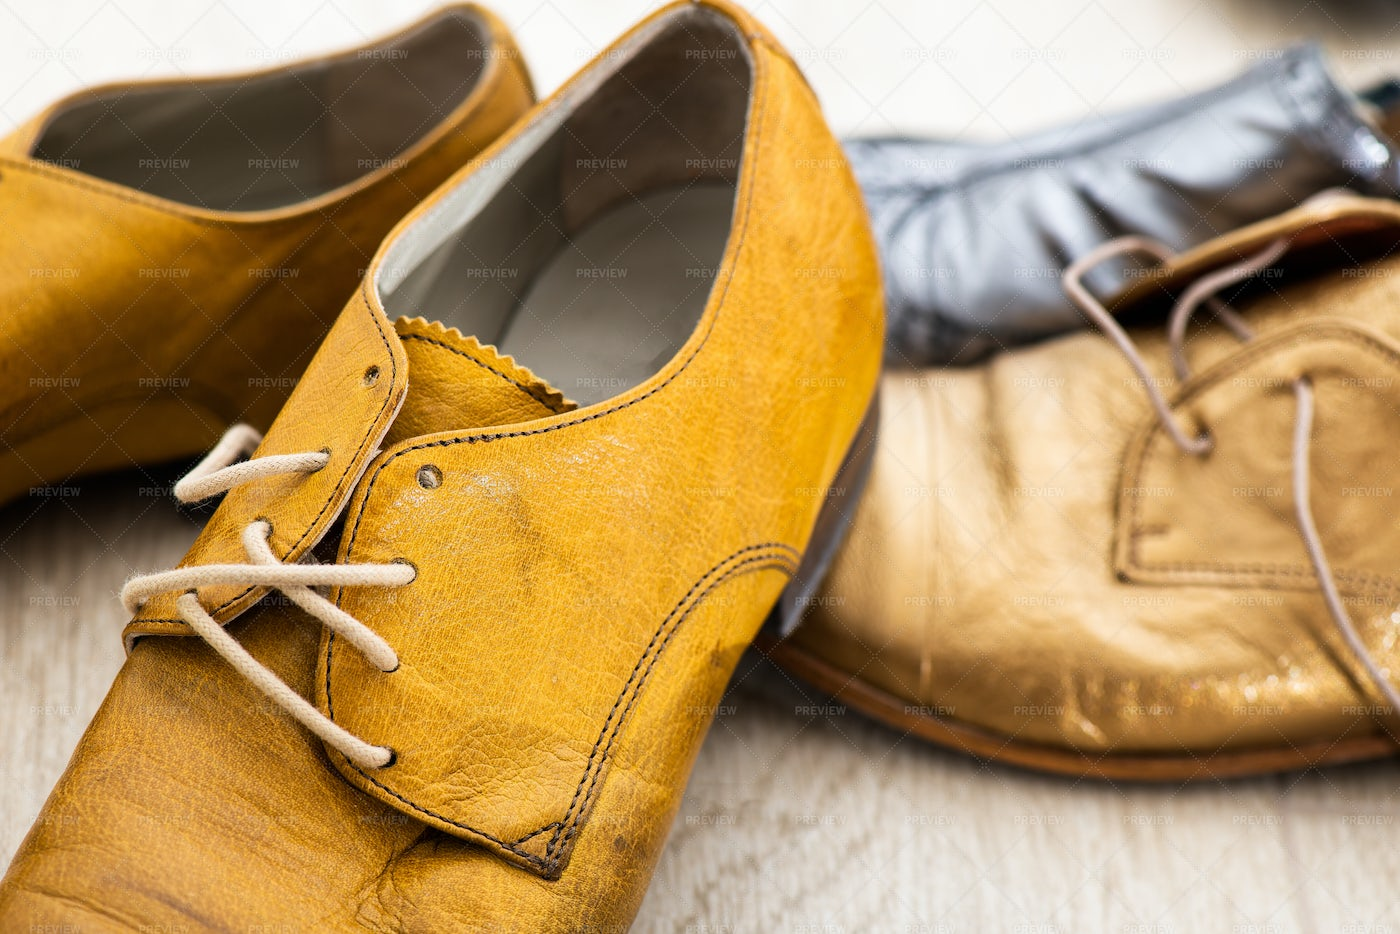 Shoes With Yellow Strings: Stock Photos